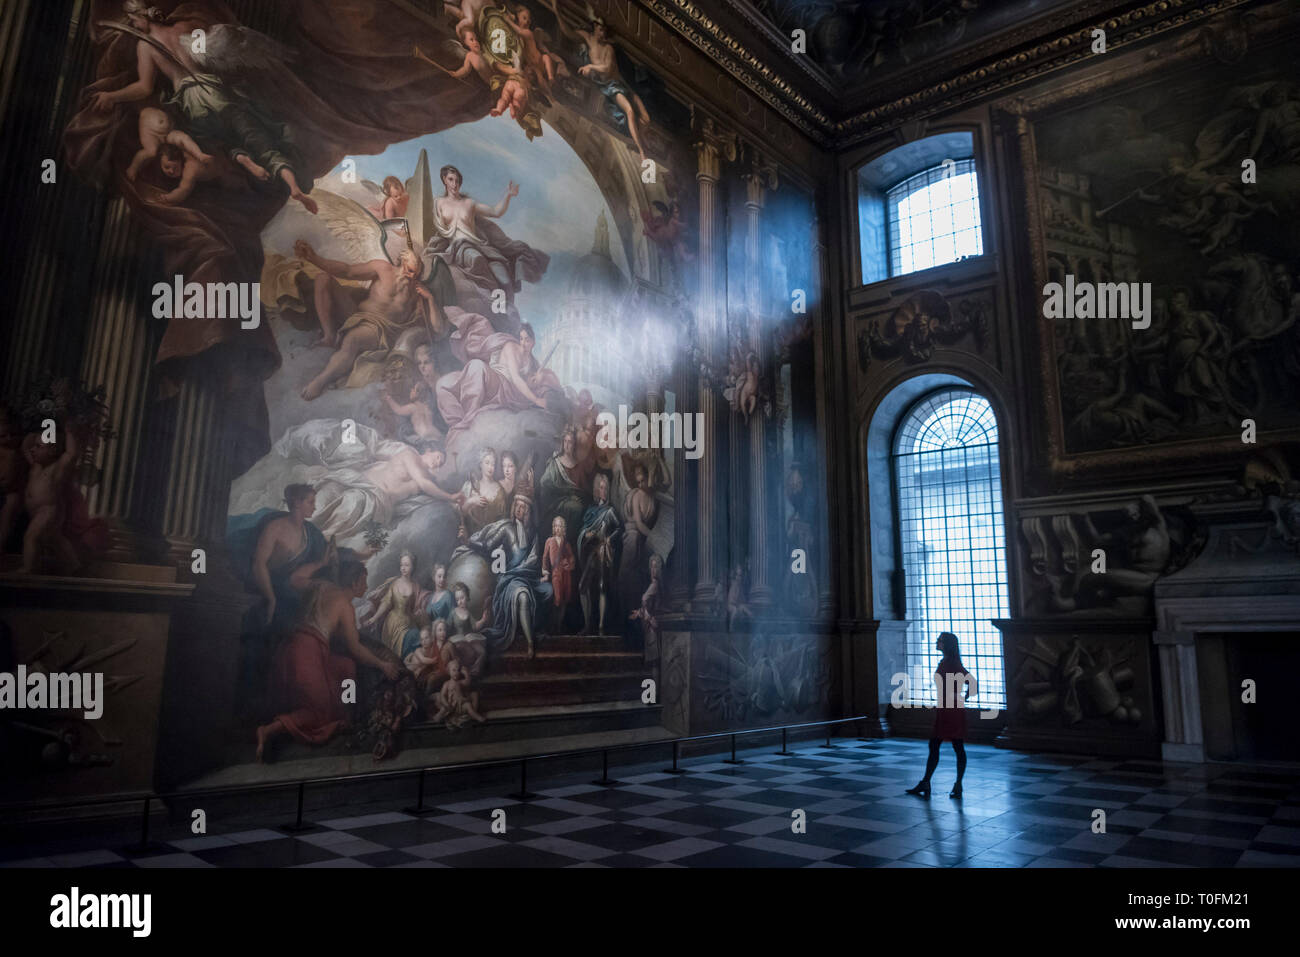 London, UK.  20 March 2019. A staff member poses during the unveiling of the newly restored Painted Hall at the Sir Christopher Wren designed Old Royal Naval College, Greenwich.  The Painted Hall reopens to the public on 23 March 2019 after a two-year National Lottery Funded conservation project which has brought its magnificent painted interior vividly back to life.  Painted by Sir James Thornhill, the first artist to be knighted, the vast 40,000 sq. ft decorated interior is a masterpiece of English baroque art.  Credit: Stephen Chung / Alamy Live News - Stock Image